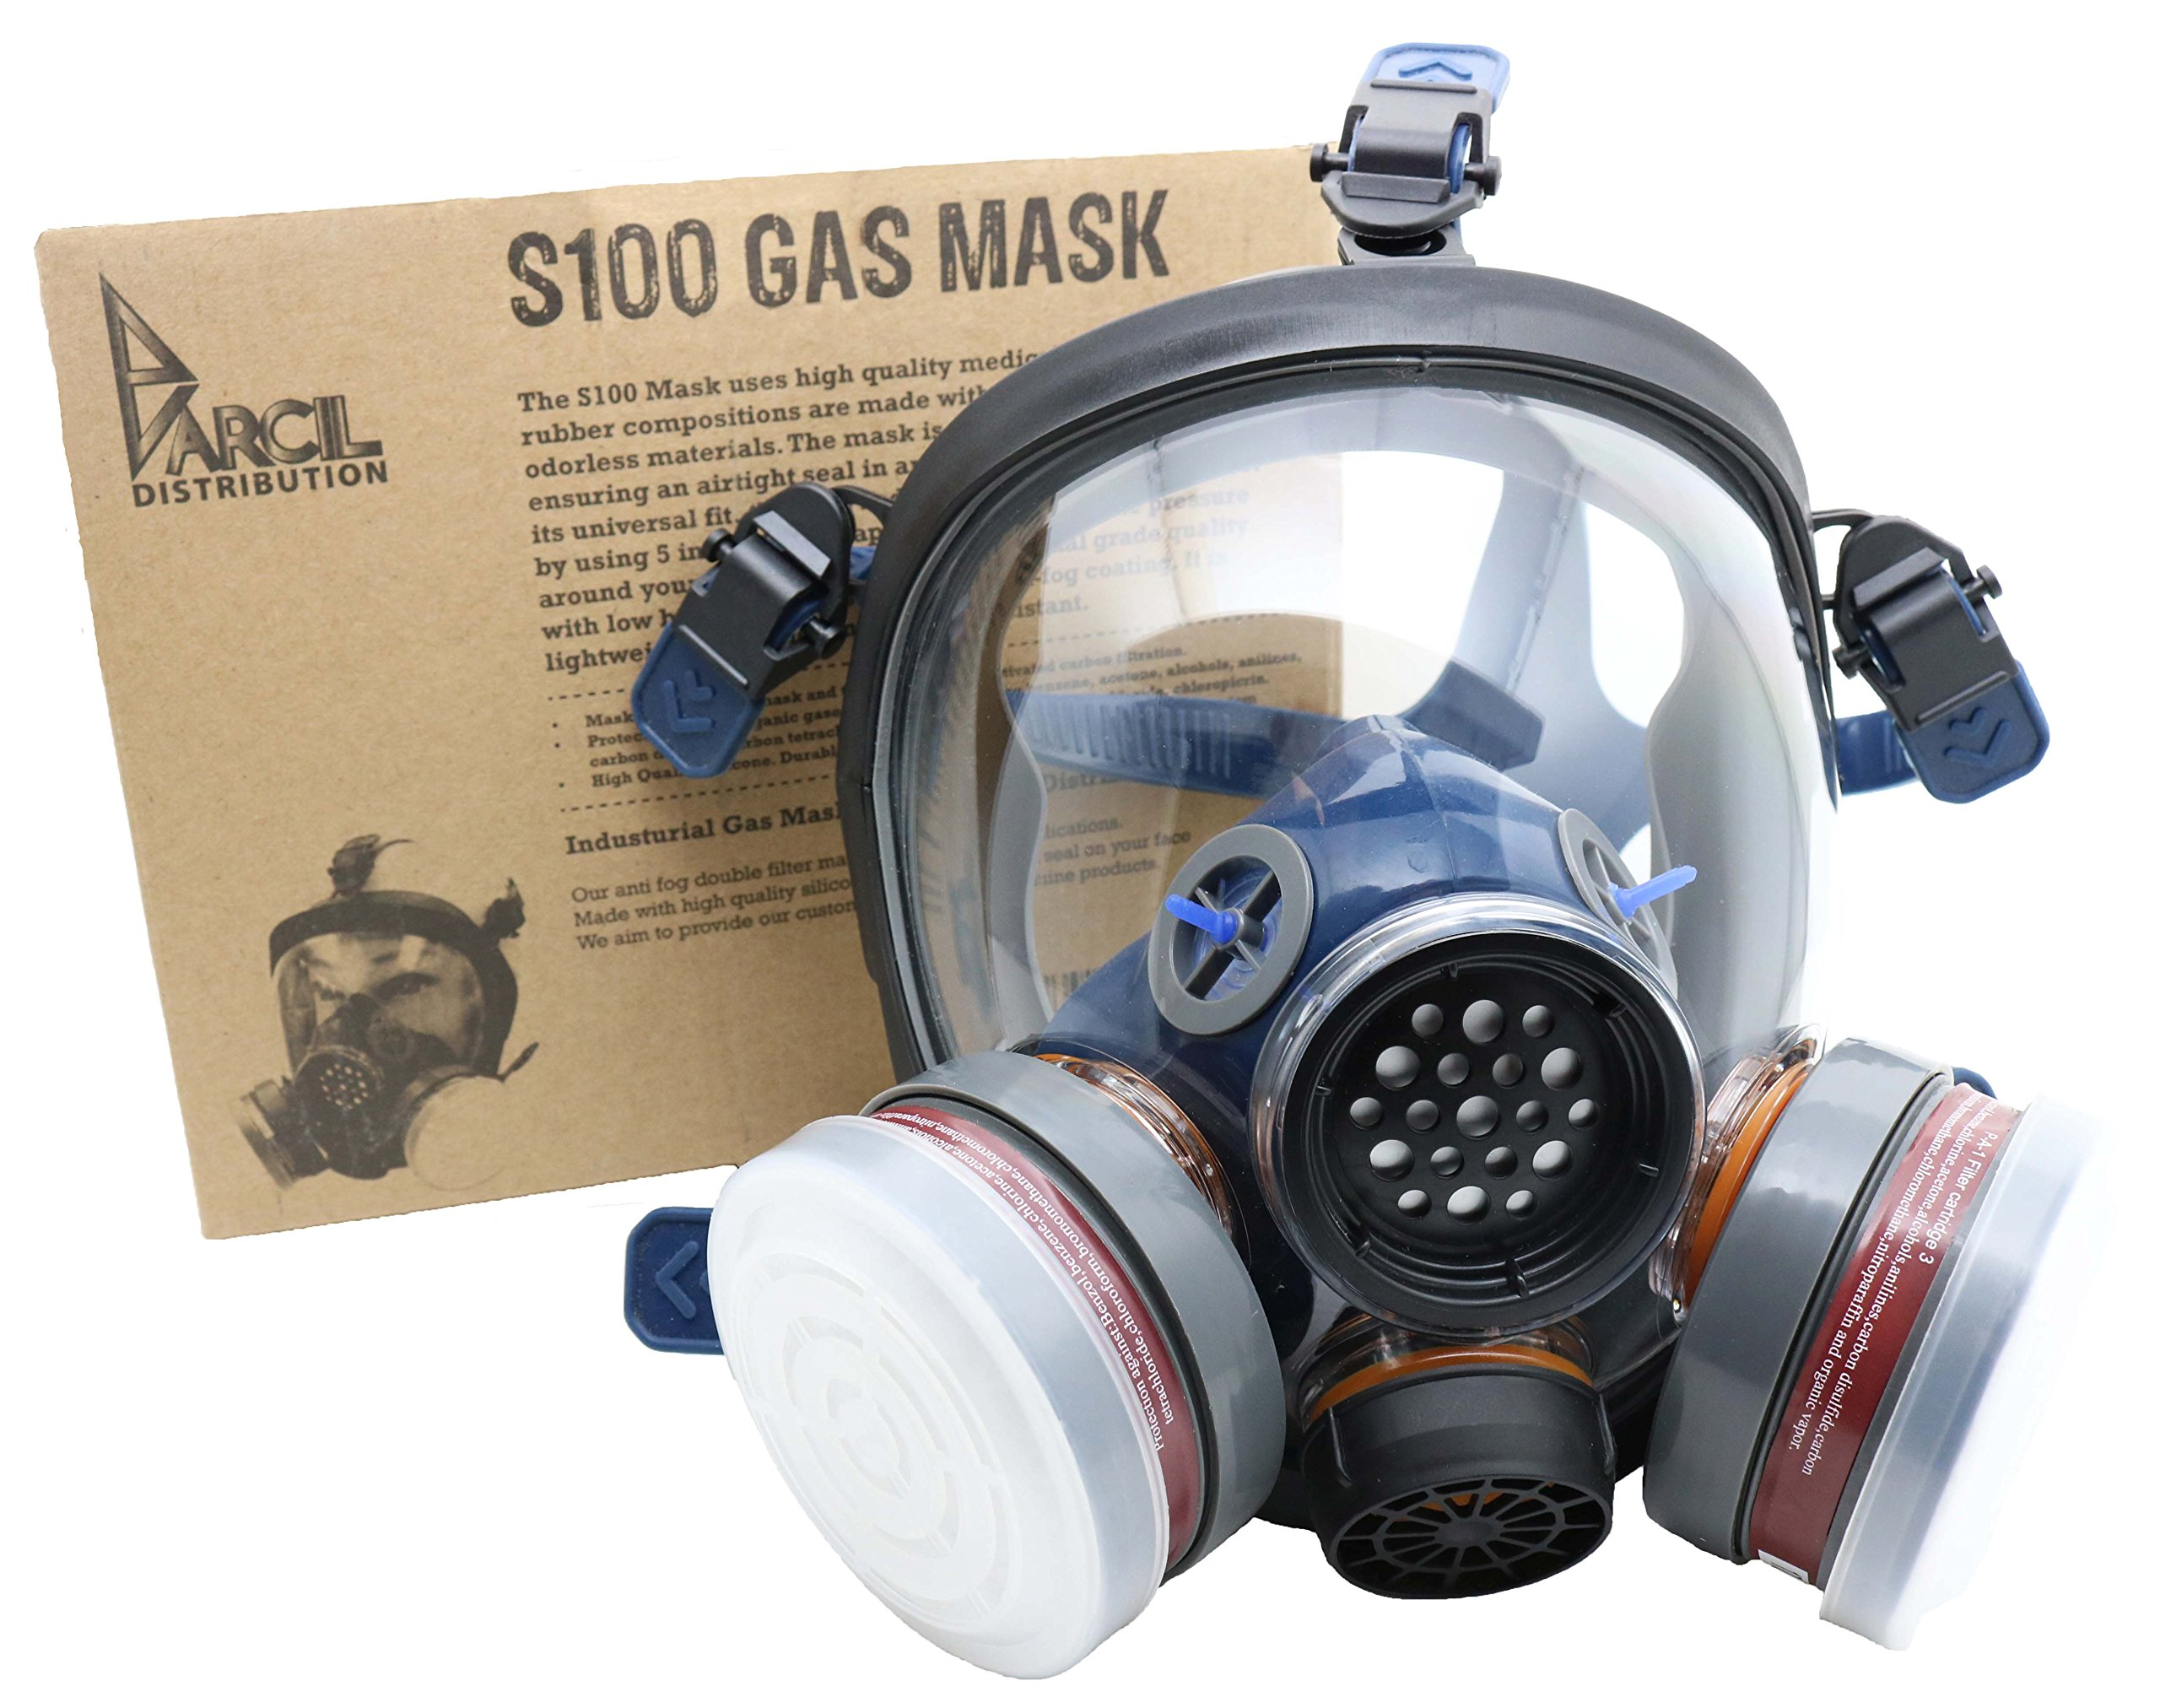 PD-100 Full Face Respirator by Parcil Distribution. 1 Year Factory Guarantee. Double Air Filter, Eye Protection, Gas Mask - Industrial Grade Quality by Parcil Distribution (Image #4)